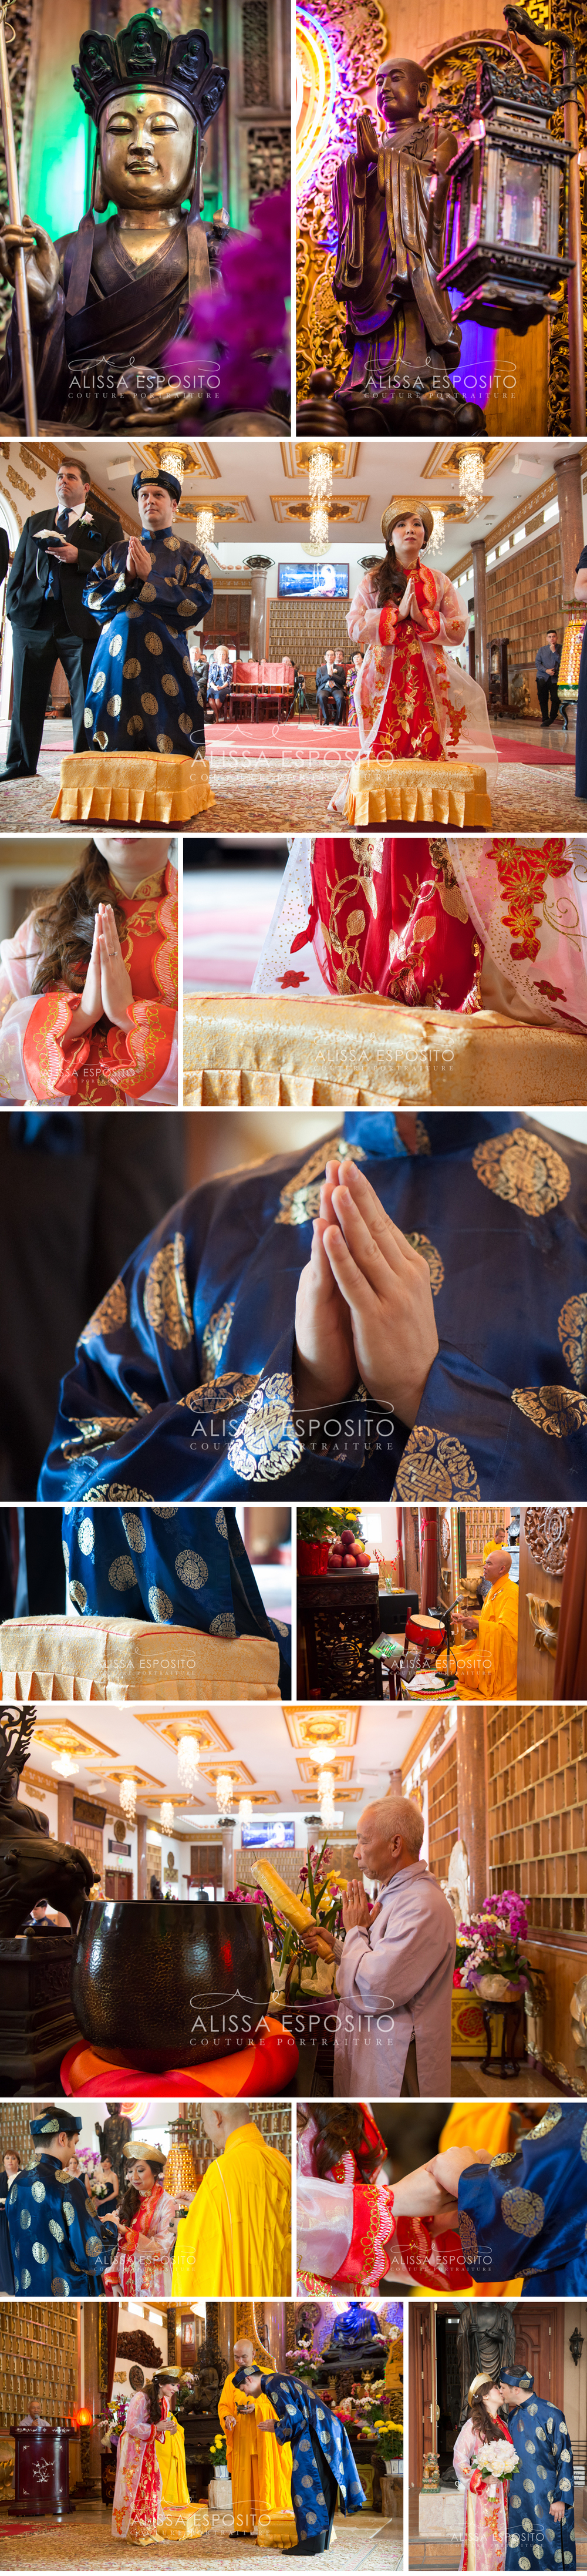 vietnameseTraditional Vietnamese Tea Ceremony Wedding, ao dai, Bhuddhist Temple, Wedding Photography by Alissa Esposito Photograpy www.alissaesposito.comweddingalissaespositoPhotographer.jpg